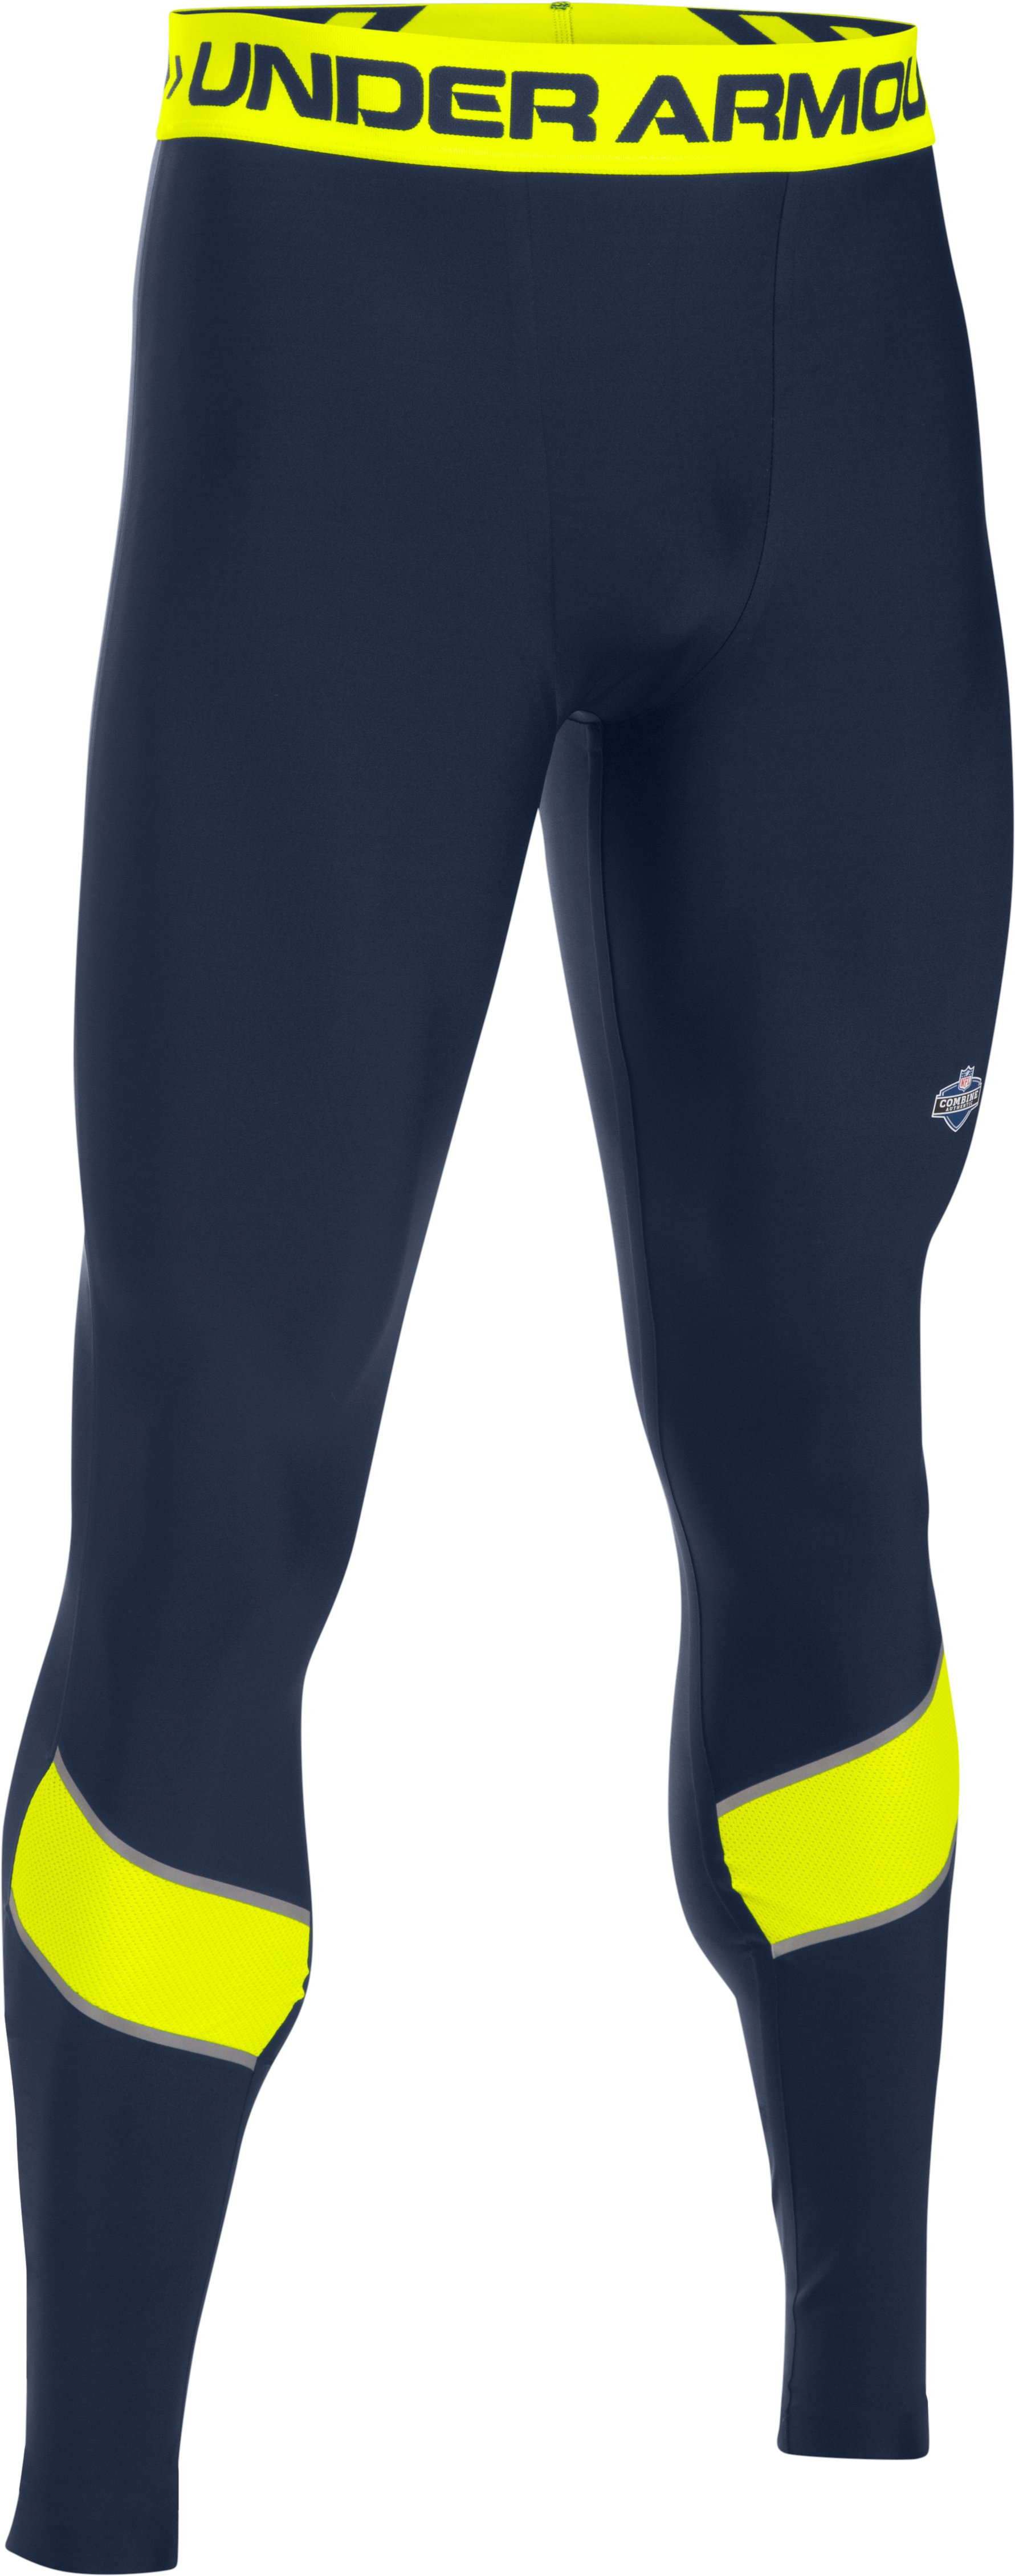 Men's NFL Combine Authentic Onfield Compression Leggings, Midnight Navy, undefined